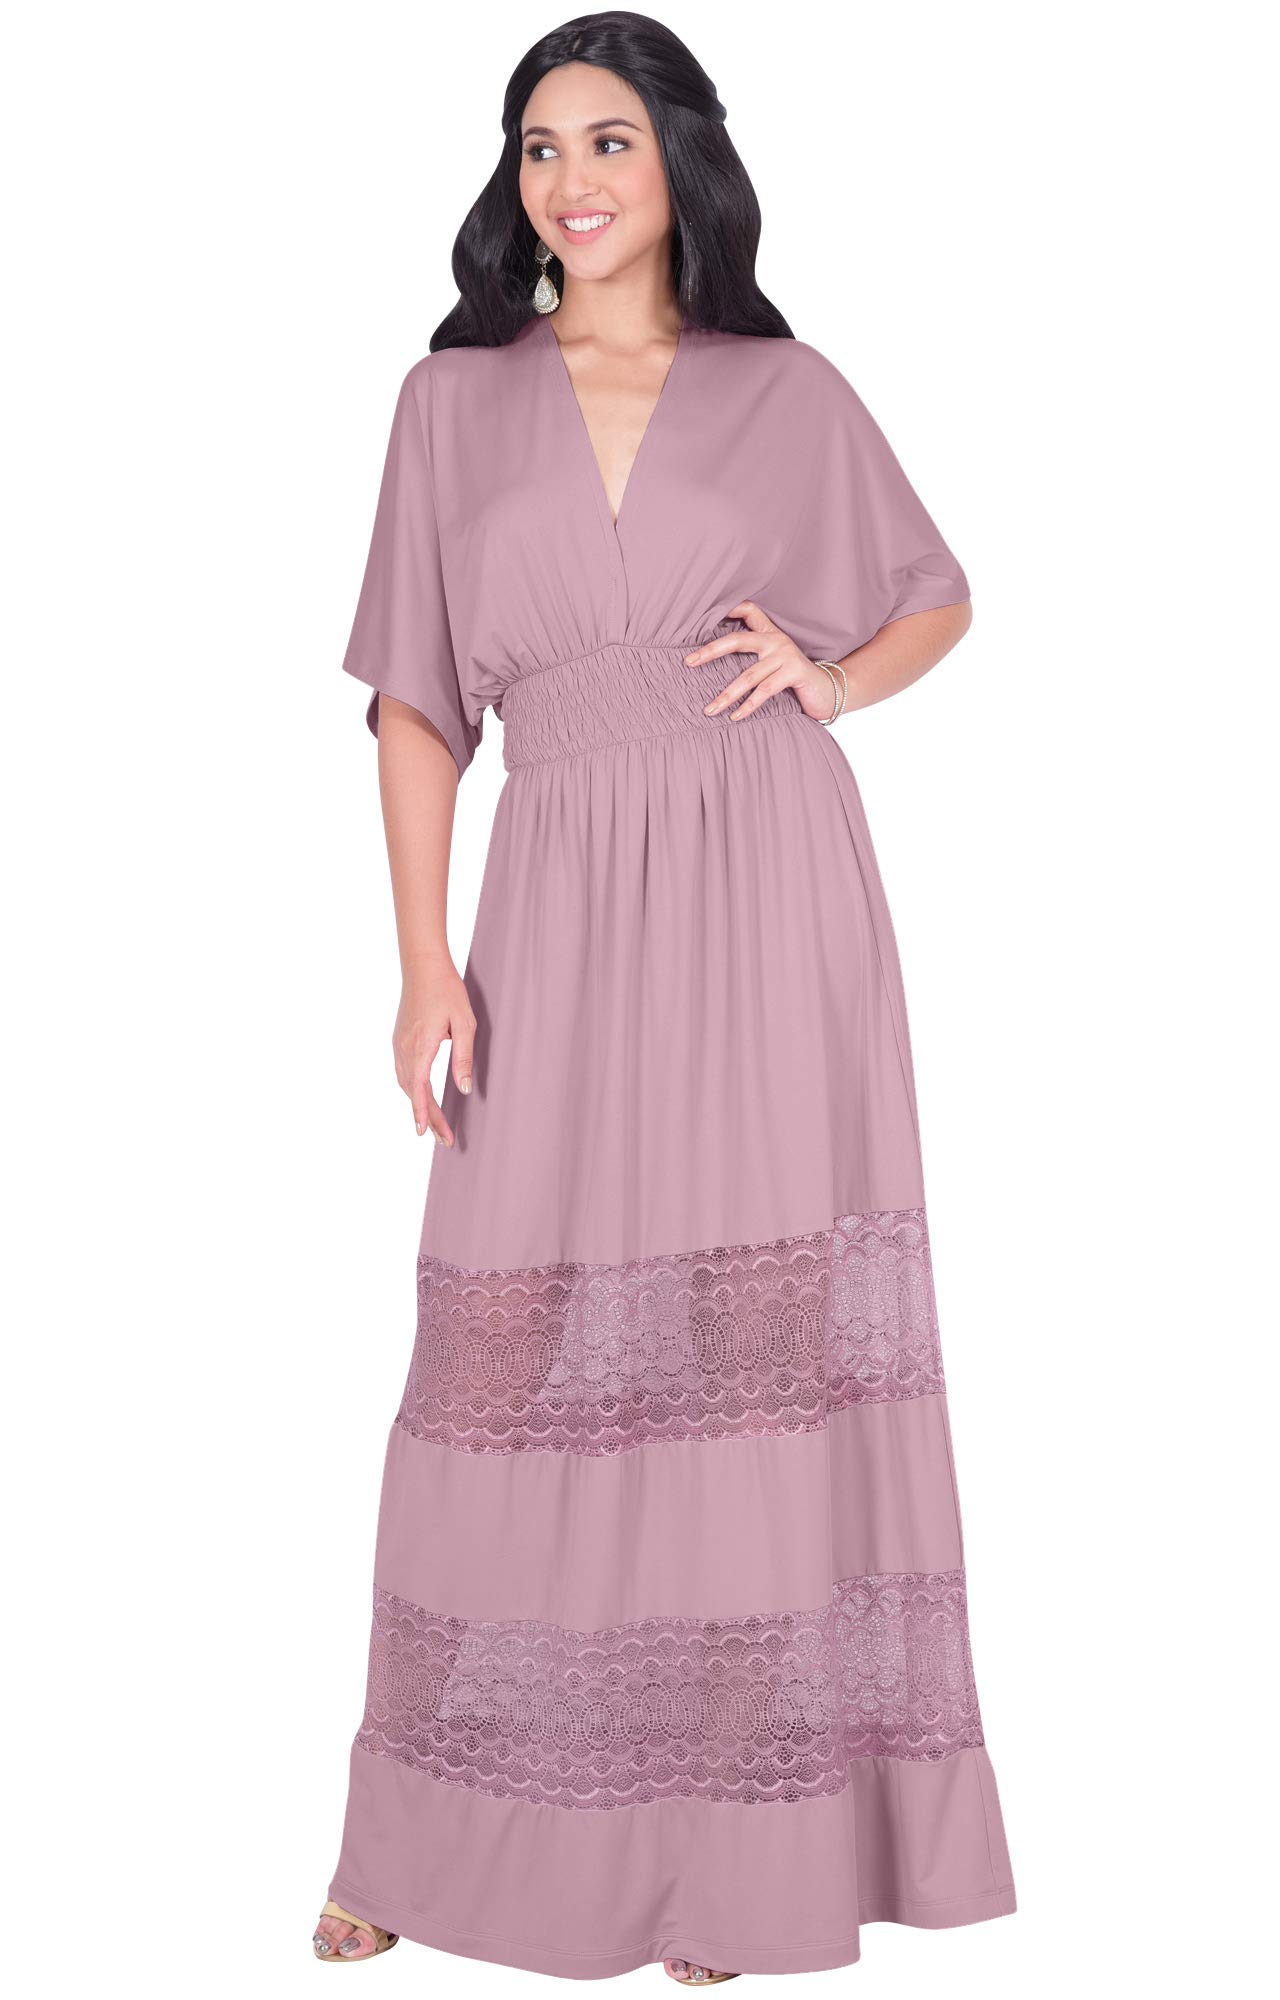 42df16509fb KOH KOH Plus Size Womens Long Sexy Summer Spring V-Neck Half Short Kimono  Sleeve Sundress Lace Flowy Casual Empire Waist Boho Bohemian Tall Beach  Elegant ...